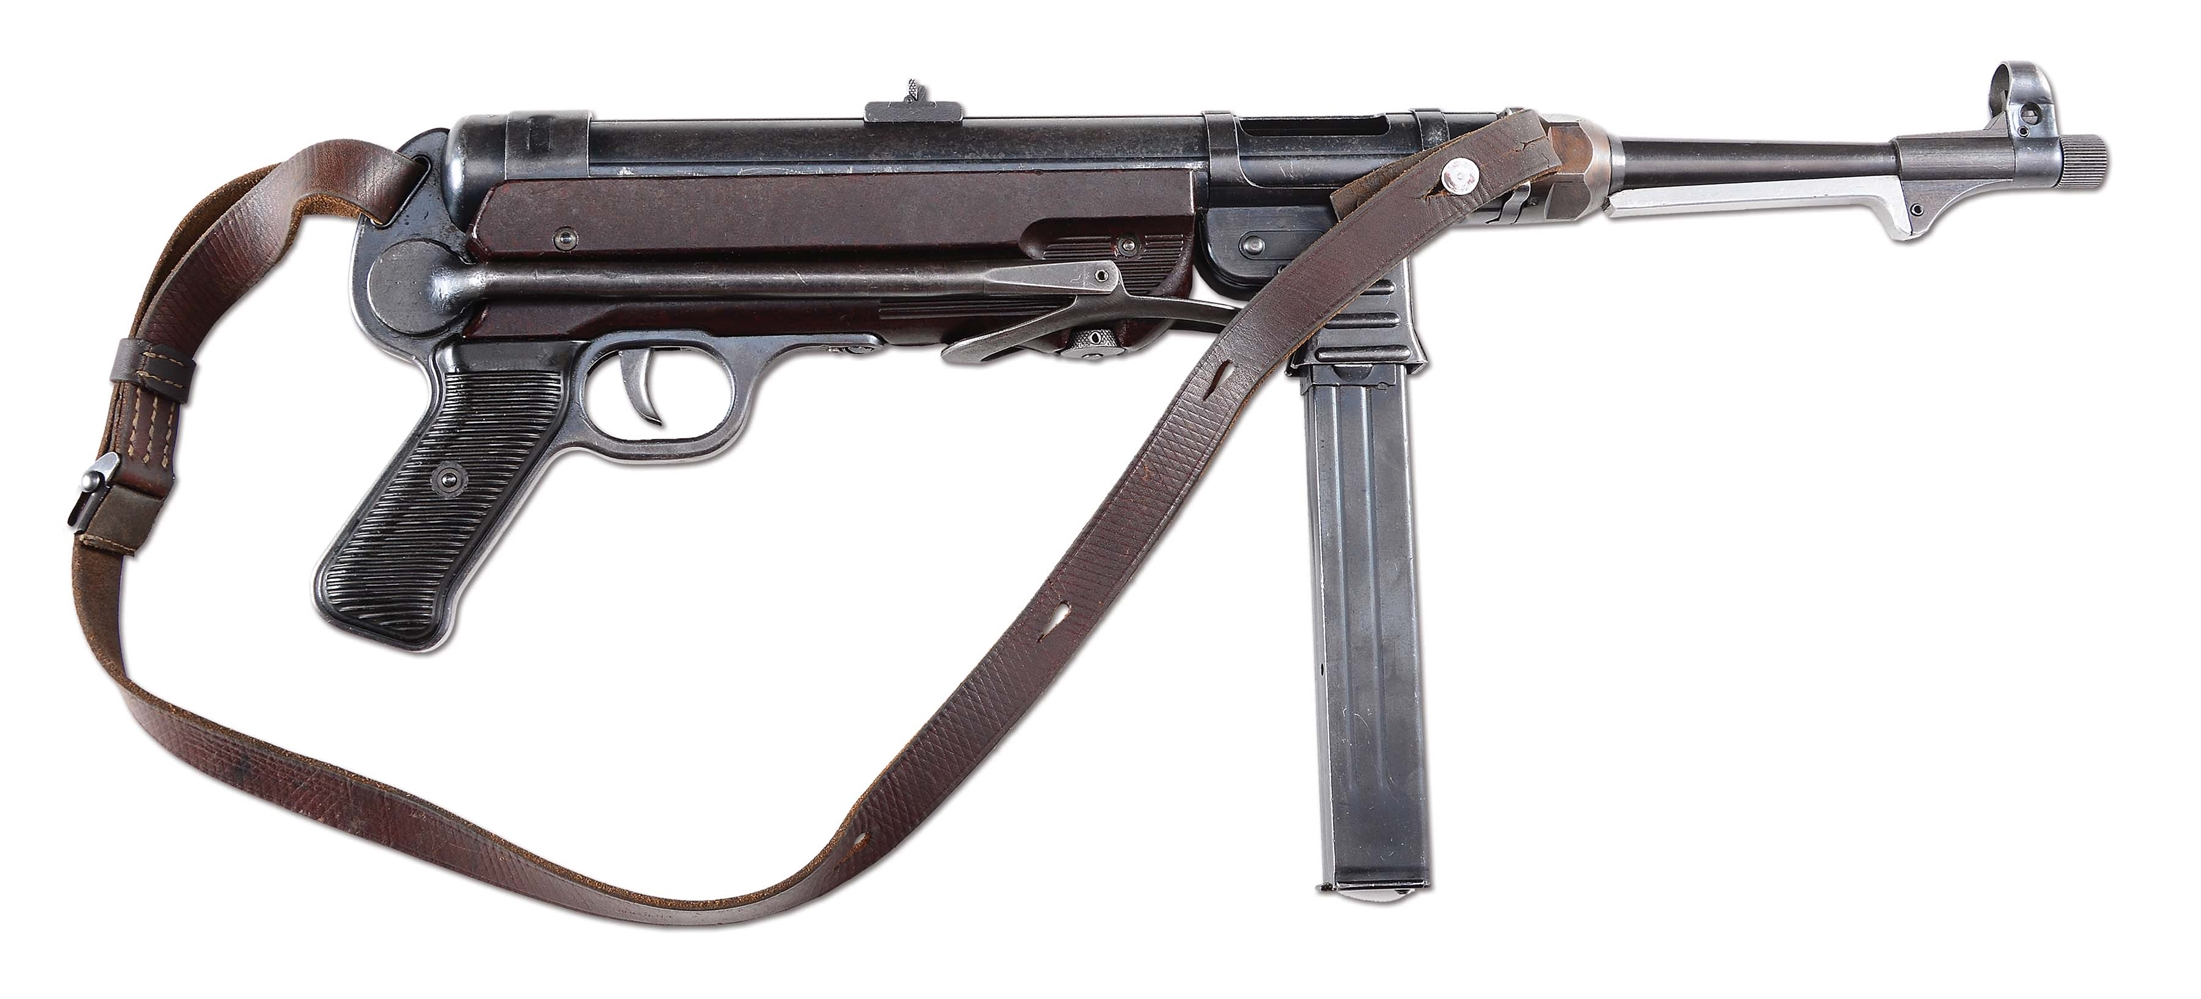 October 30 - November 2, 2018 Firearms, Militaria, & Sporting